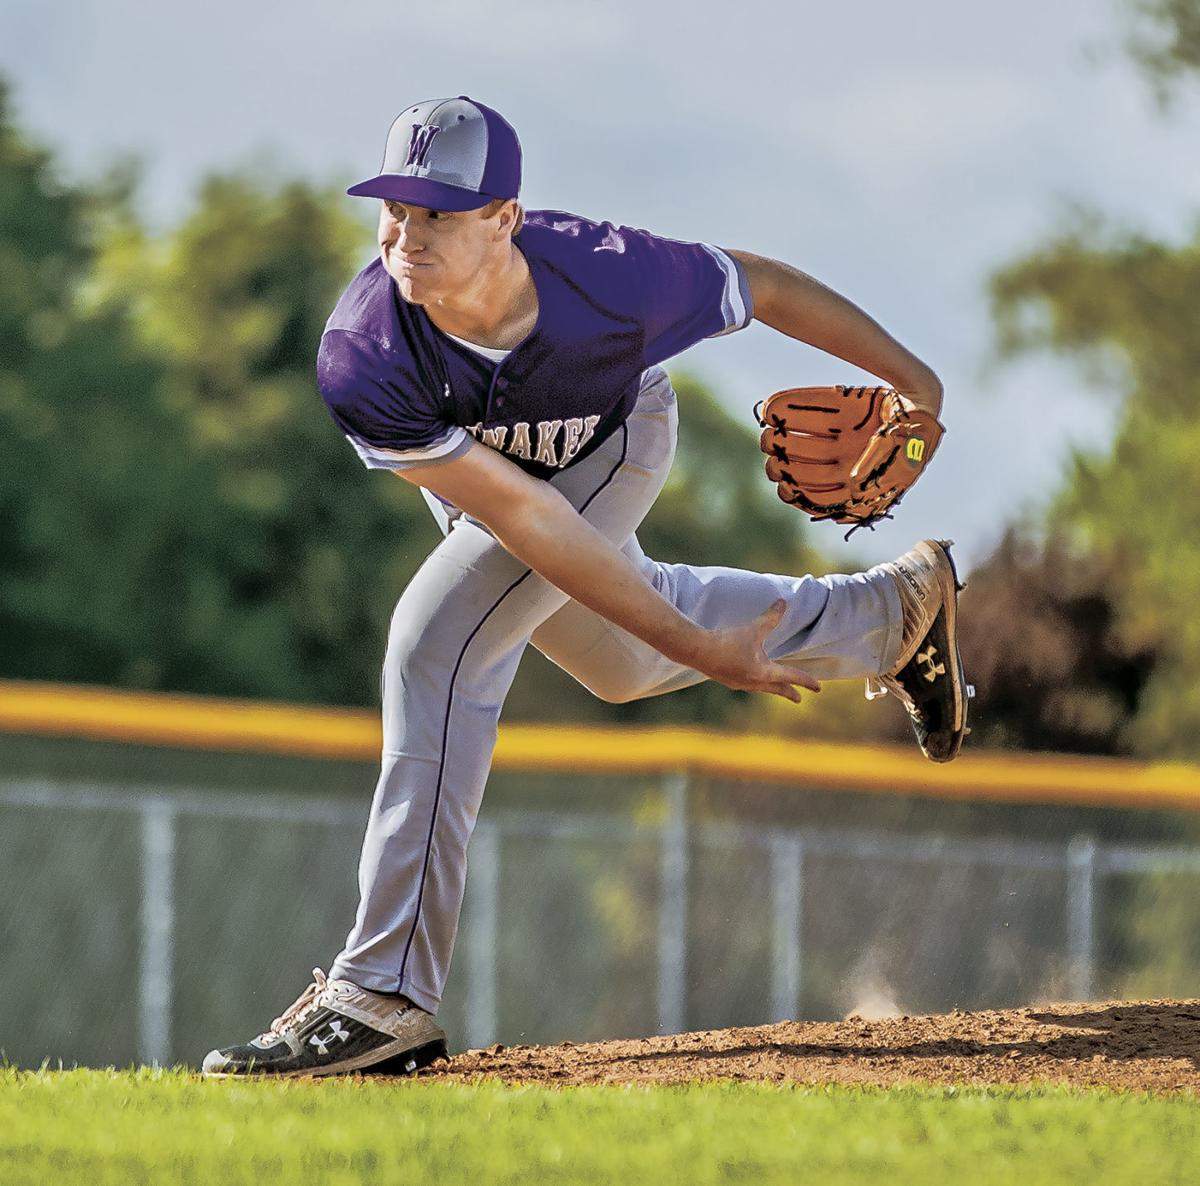 Pitcher of the year